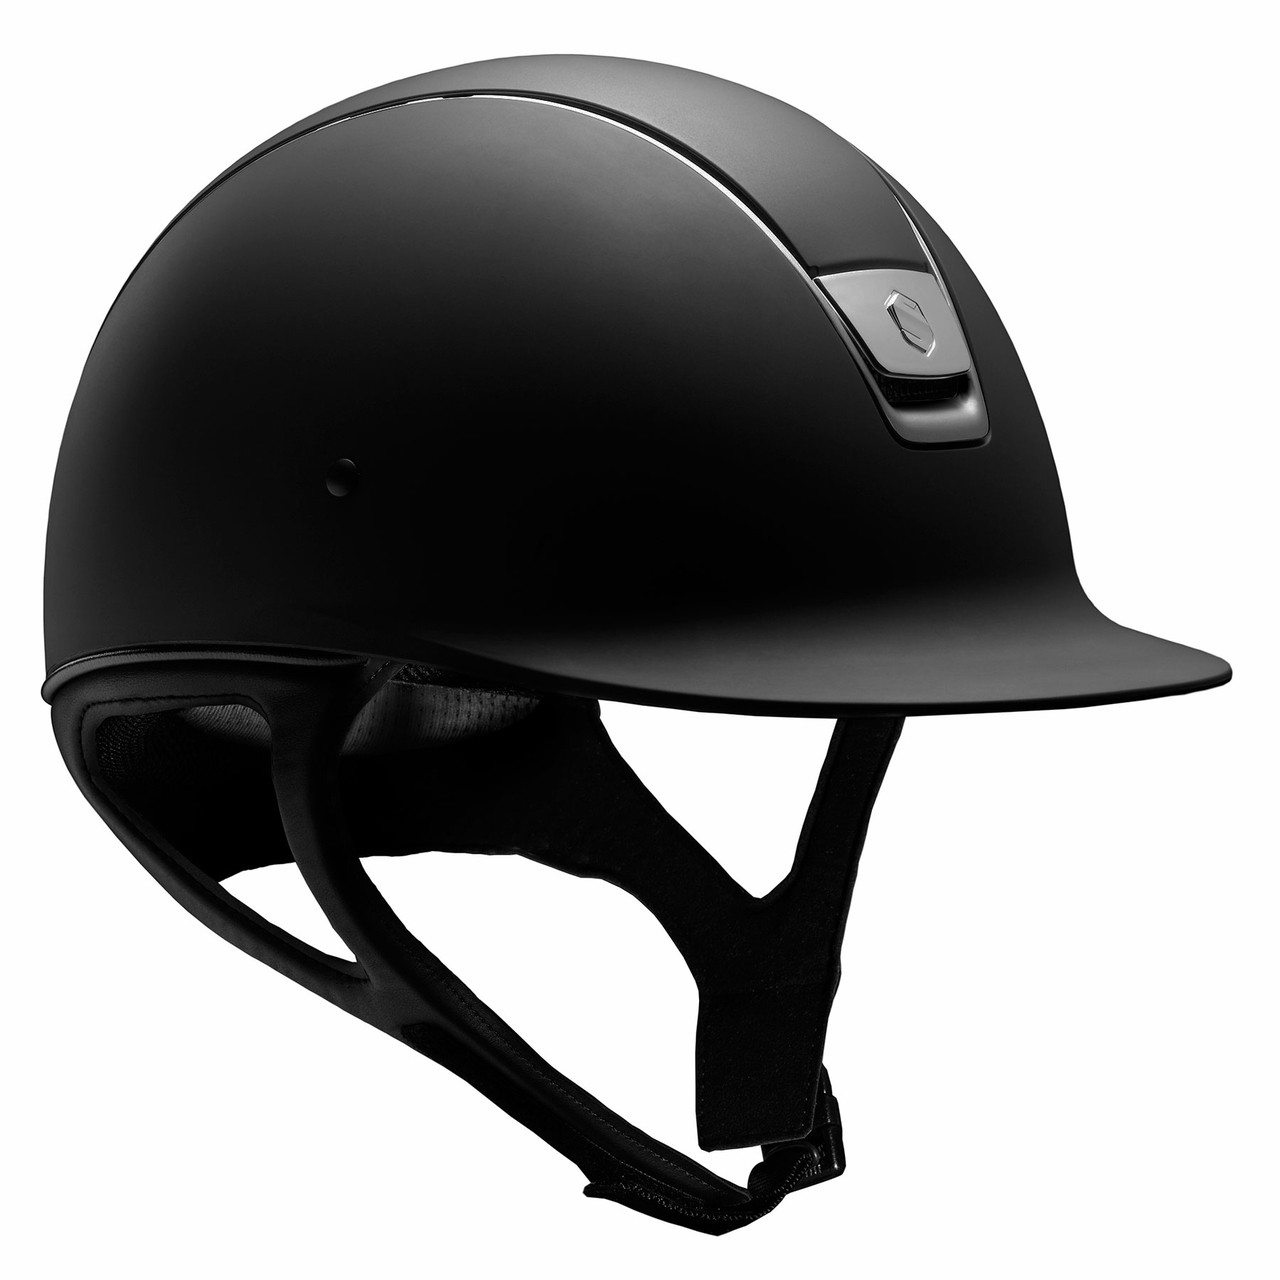 Global Equestrian Helmets Market Research Report With COVID-19 Update –  Galus Australis